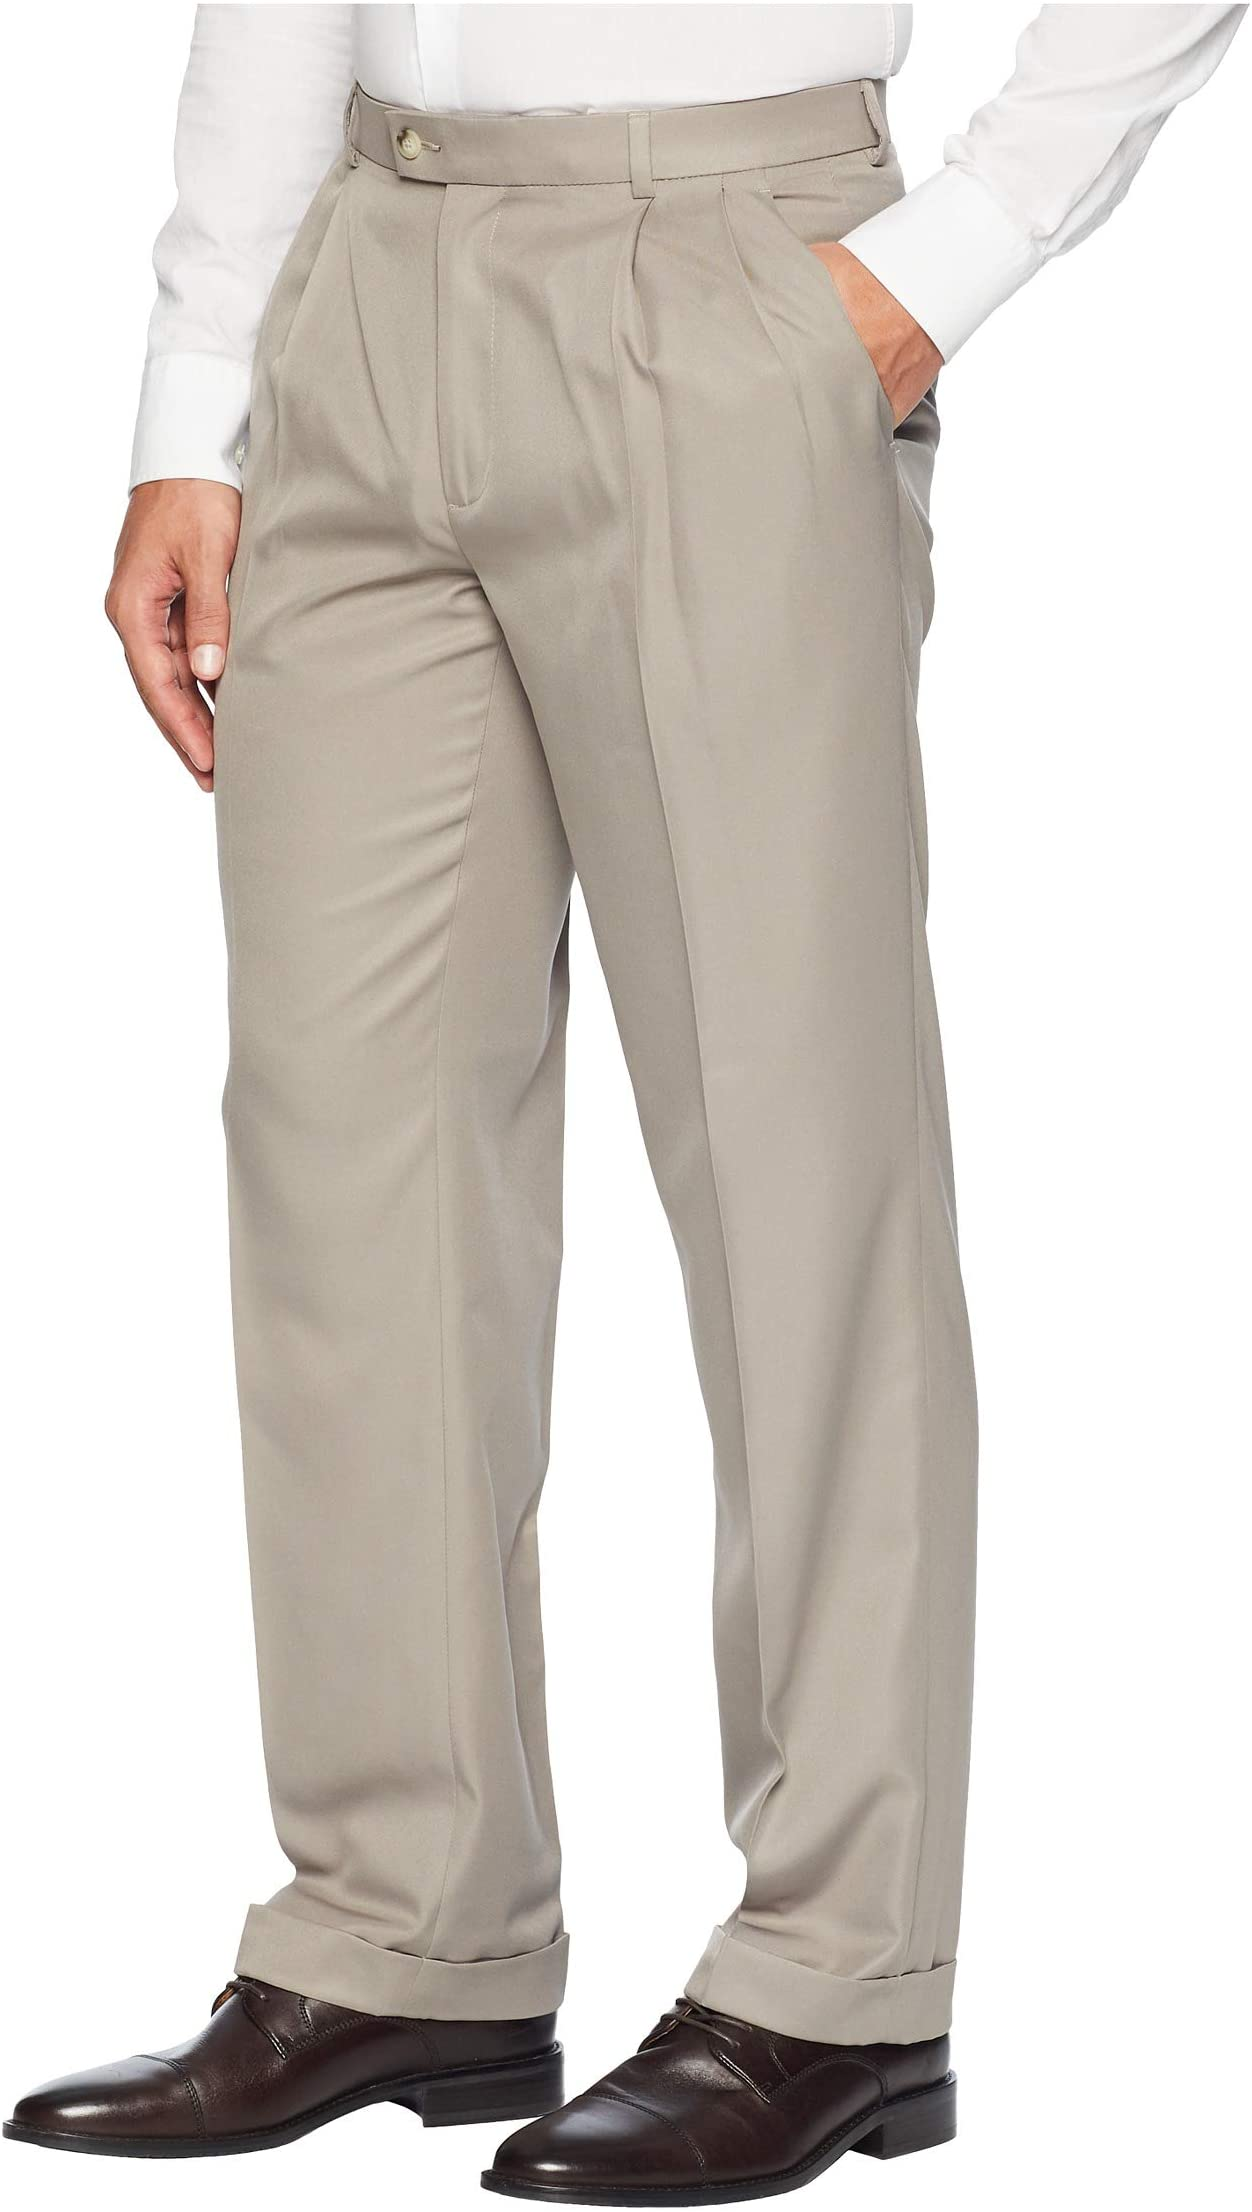 Perry Ellis Mens Classic Fit Elastic Waist Double Pleated Cuffed Pant